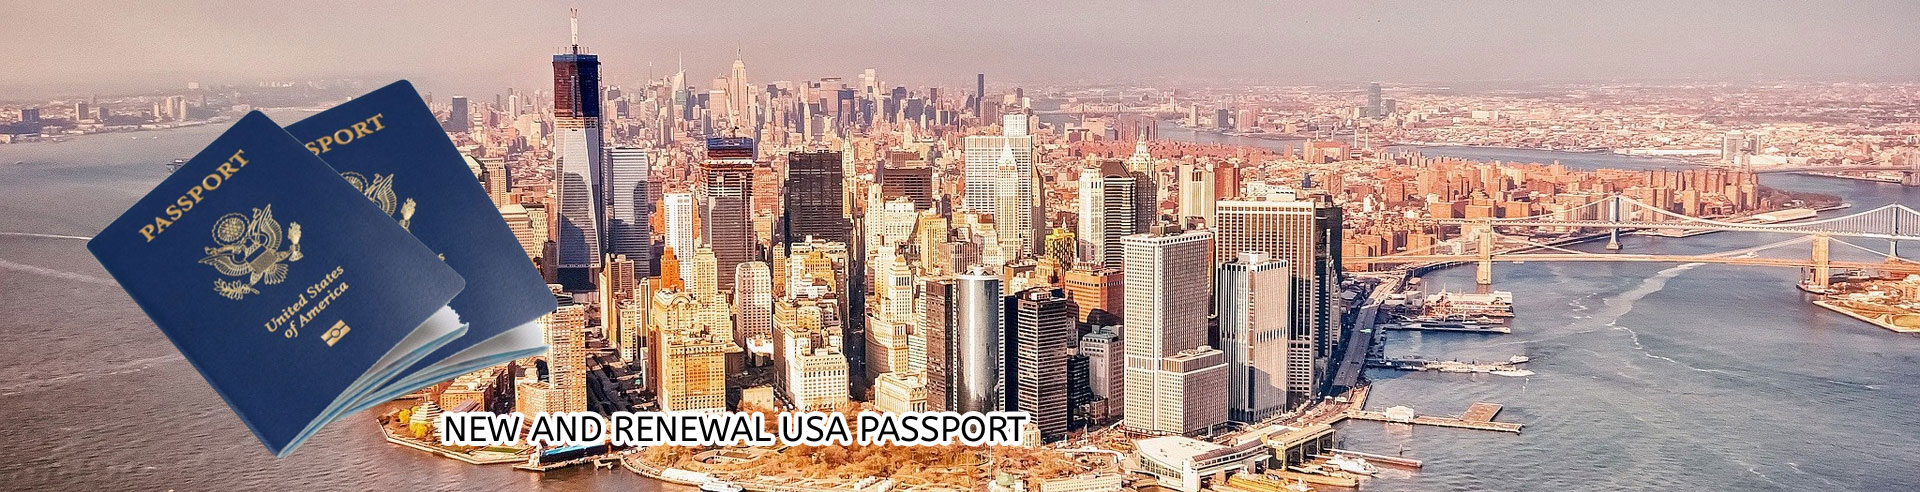 New And Renewal USA Passport